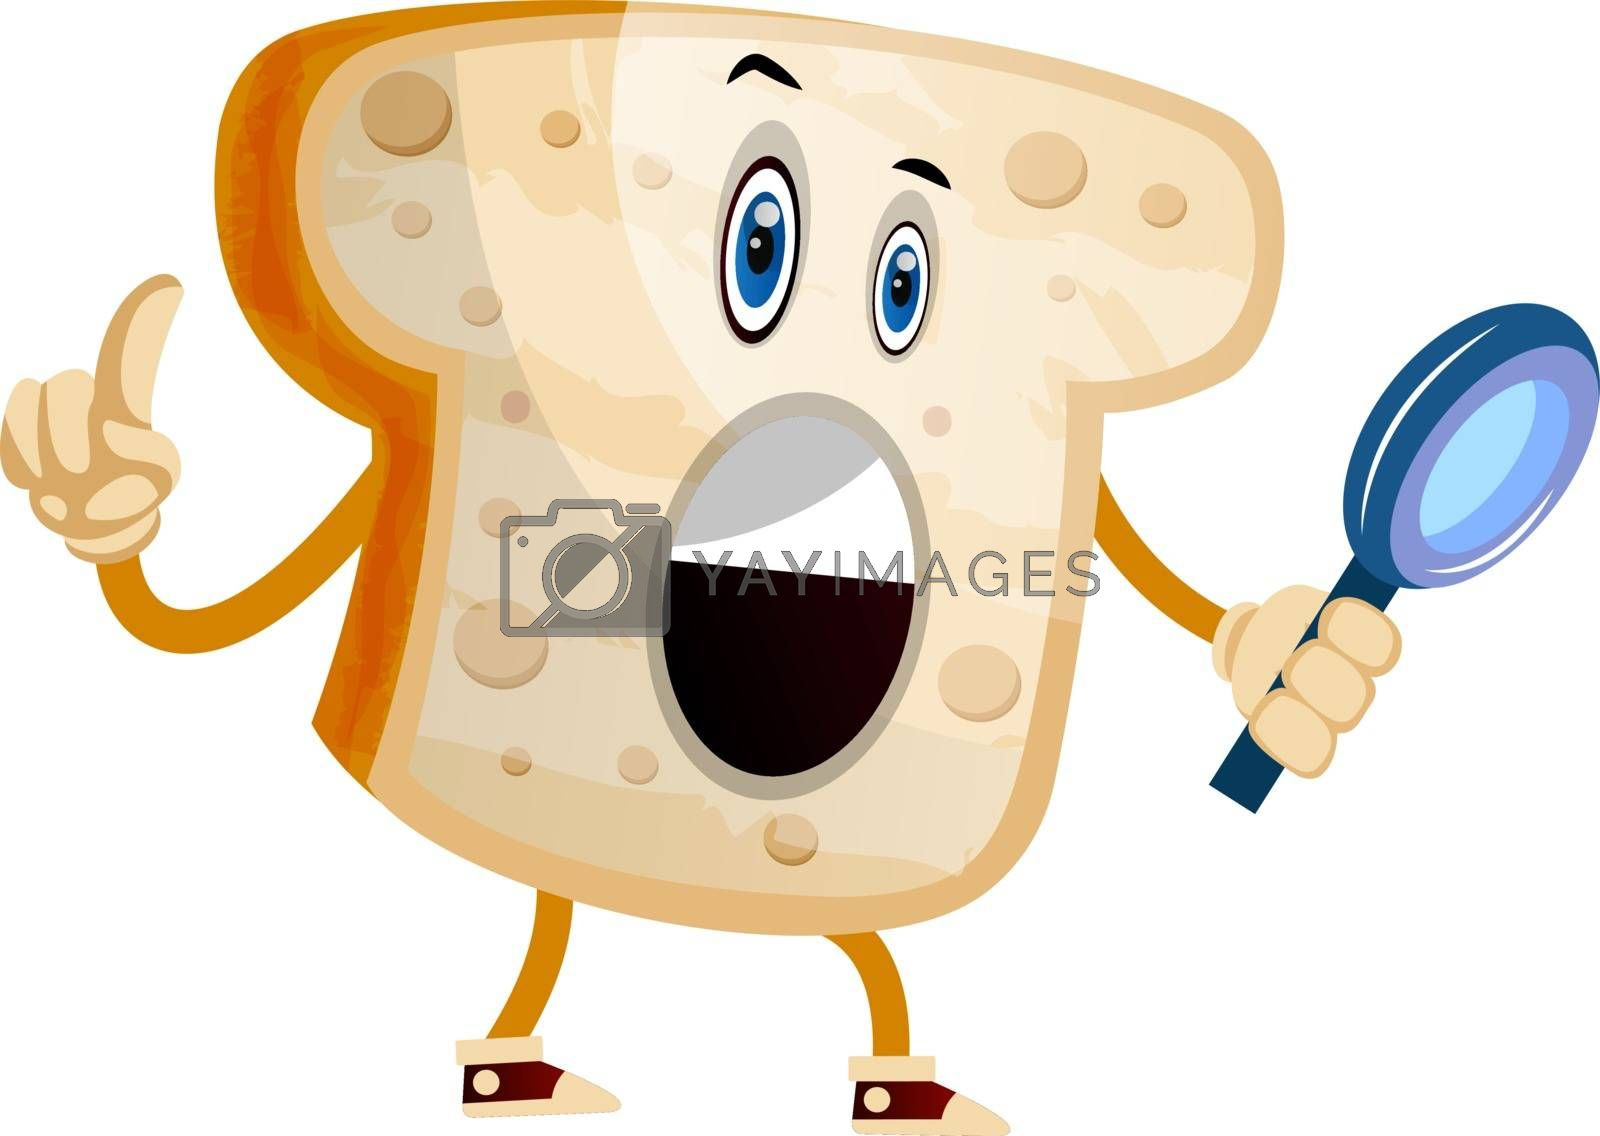 Royalty free image of Bread with magnifying glass illustration vector on white backgro by Morphart